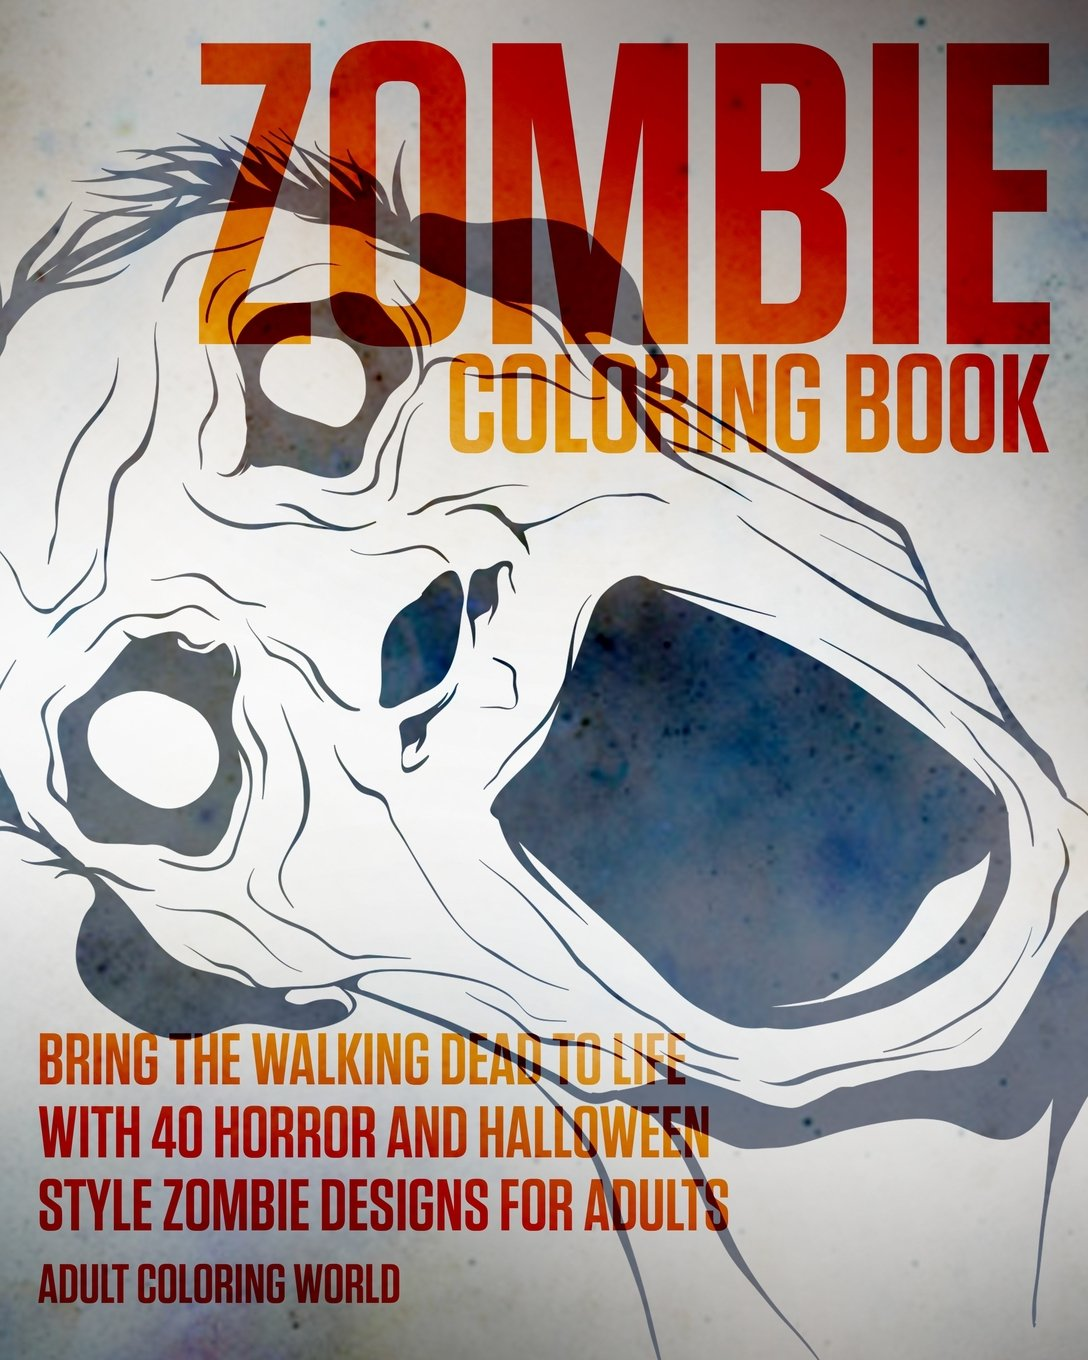 amazon com zombie coloring book bring the walking dead to life